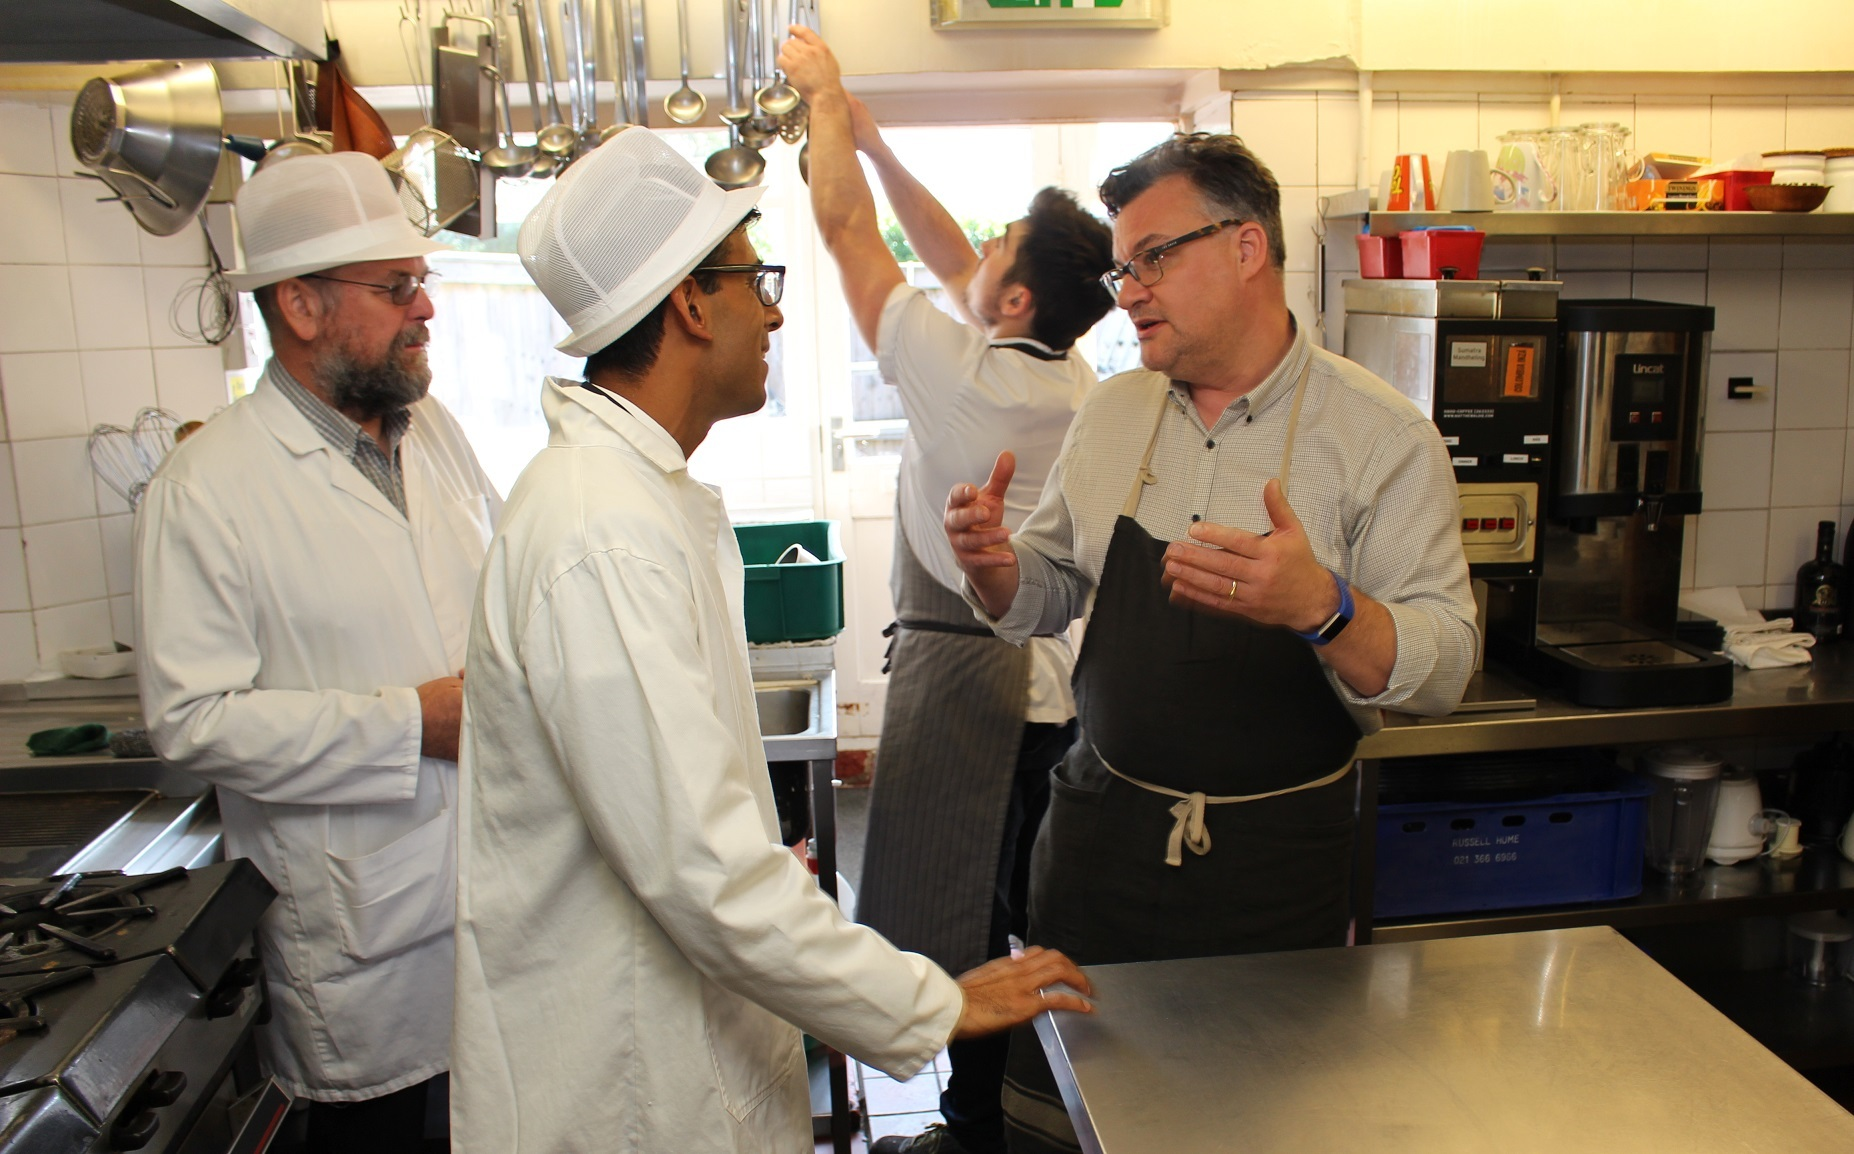 MP Rishi Sunak talks to chef patron Jonathan Harrison, right, in the kitchen of The Sandpiper, Leyburn, with Graham Bourne, Richmondshire District Council's food safety technician